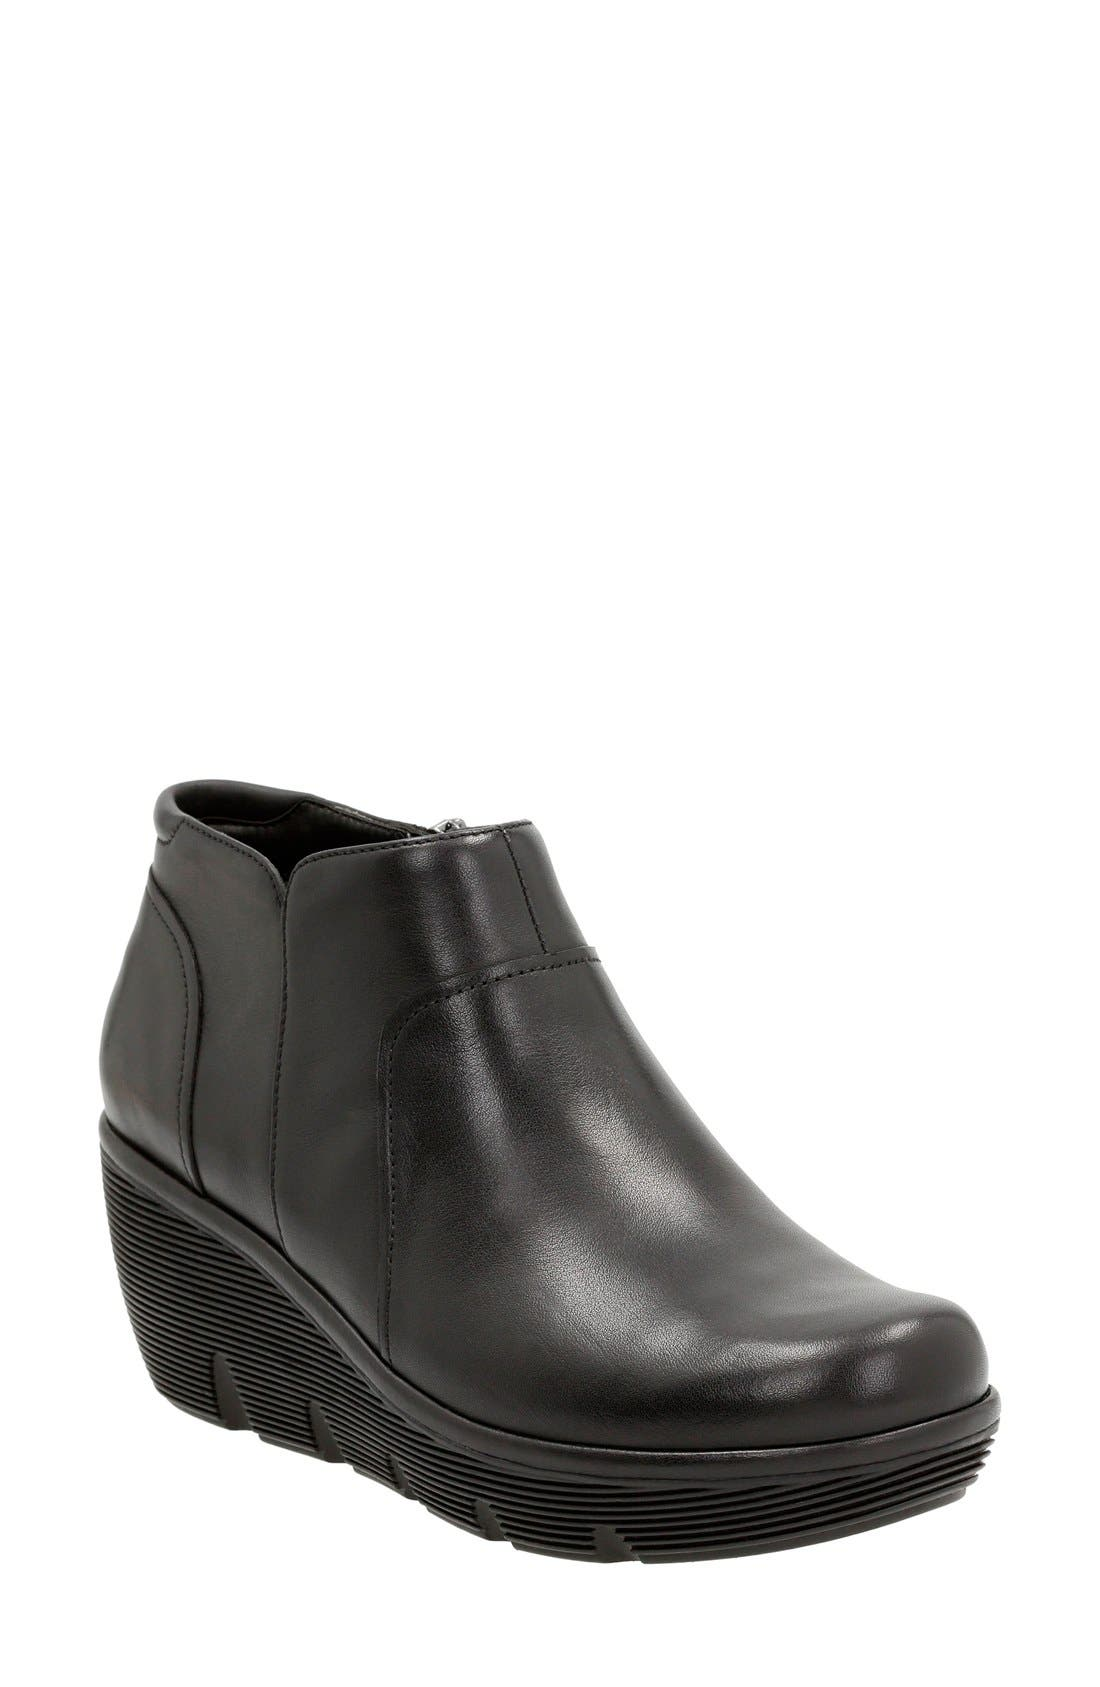 'Clarene Sun' Wedge Boot,                             Main thumbnail 1, color,                             Black Leather